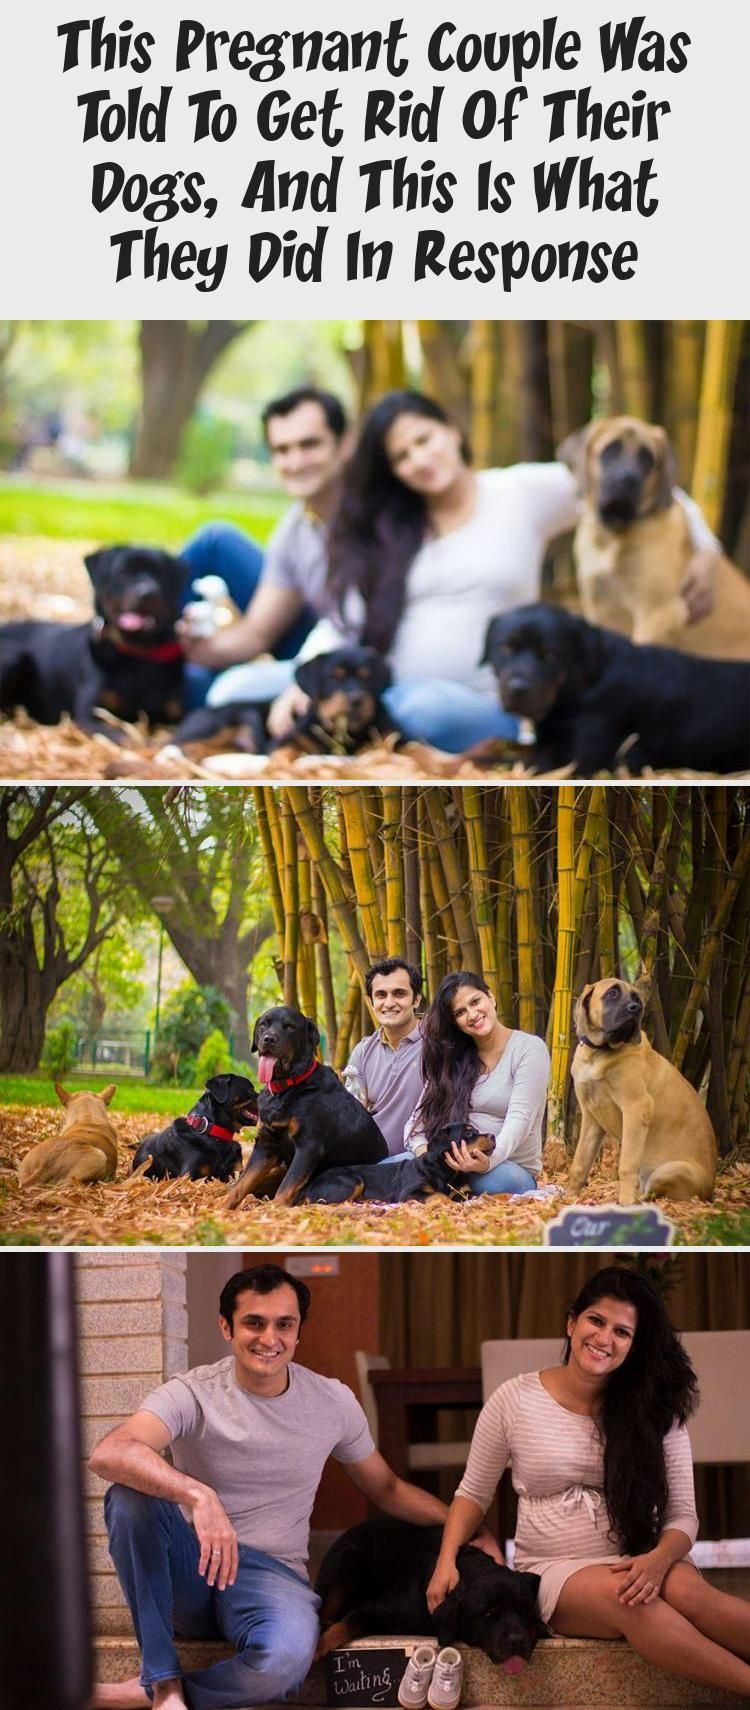 This Pregnant Couple Was Told To Get Rid Of Their Dogs And This